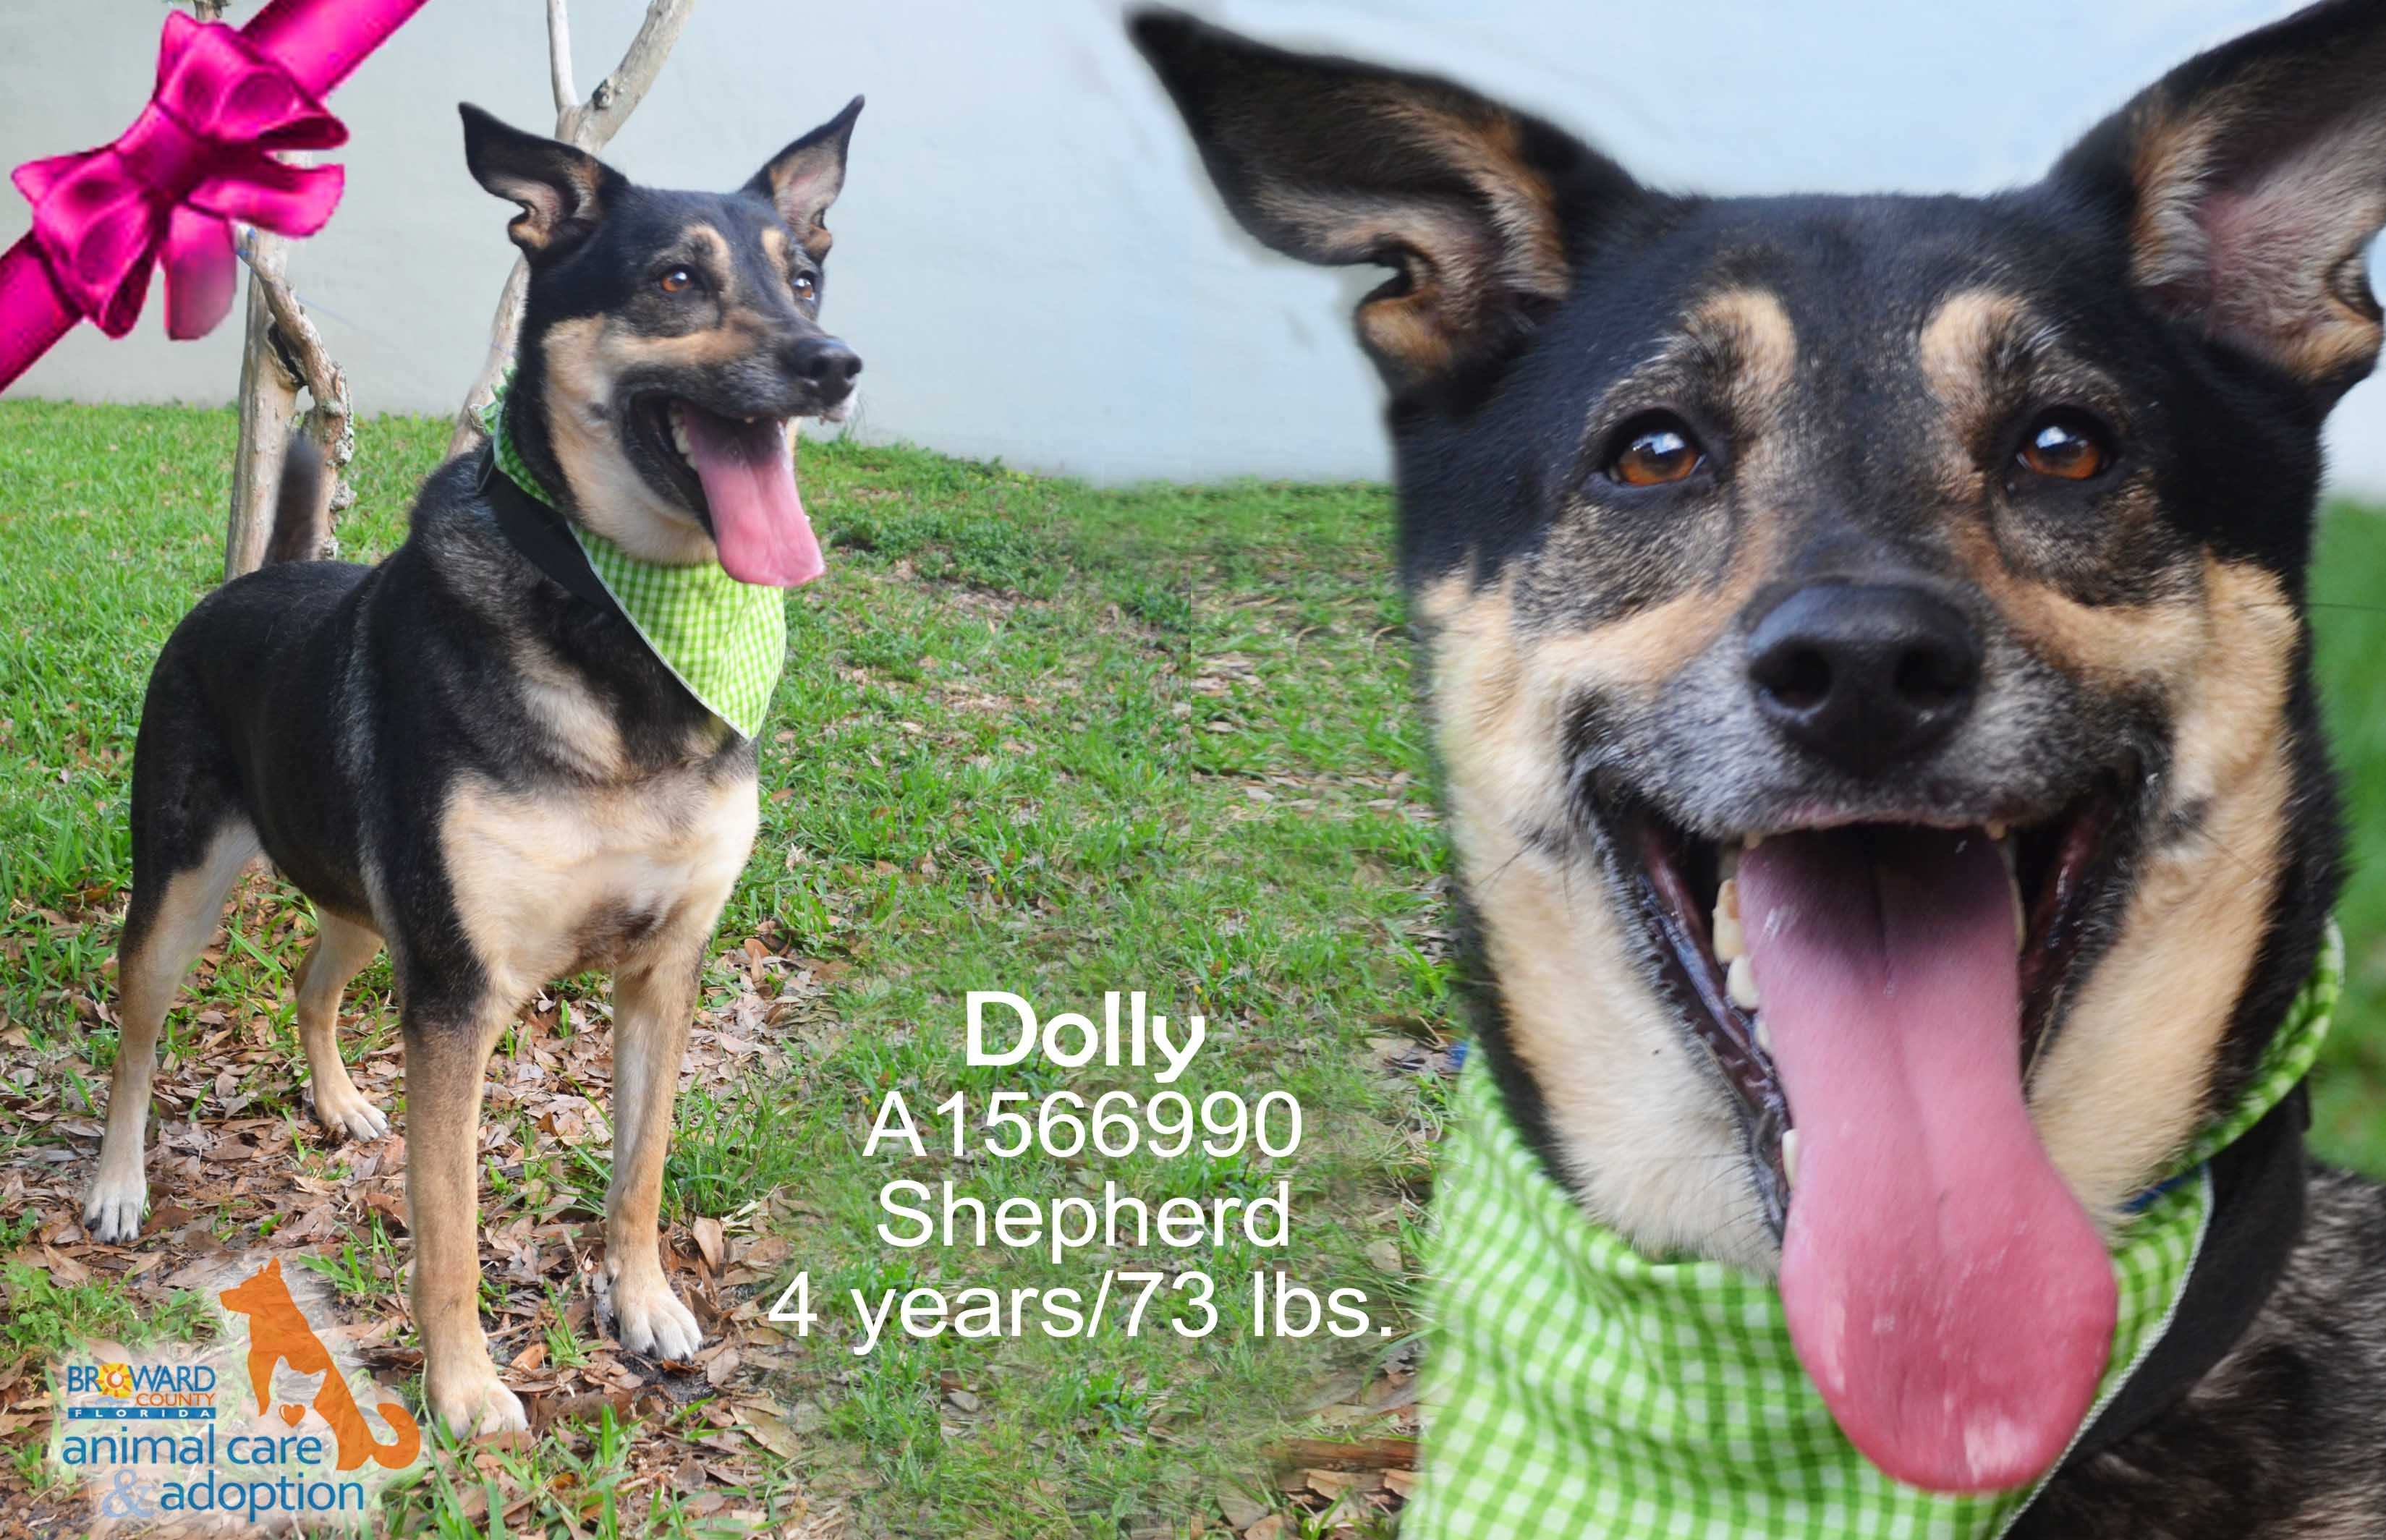 Hi, my name is Dolly and I'm available for adoption at